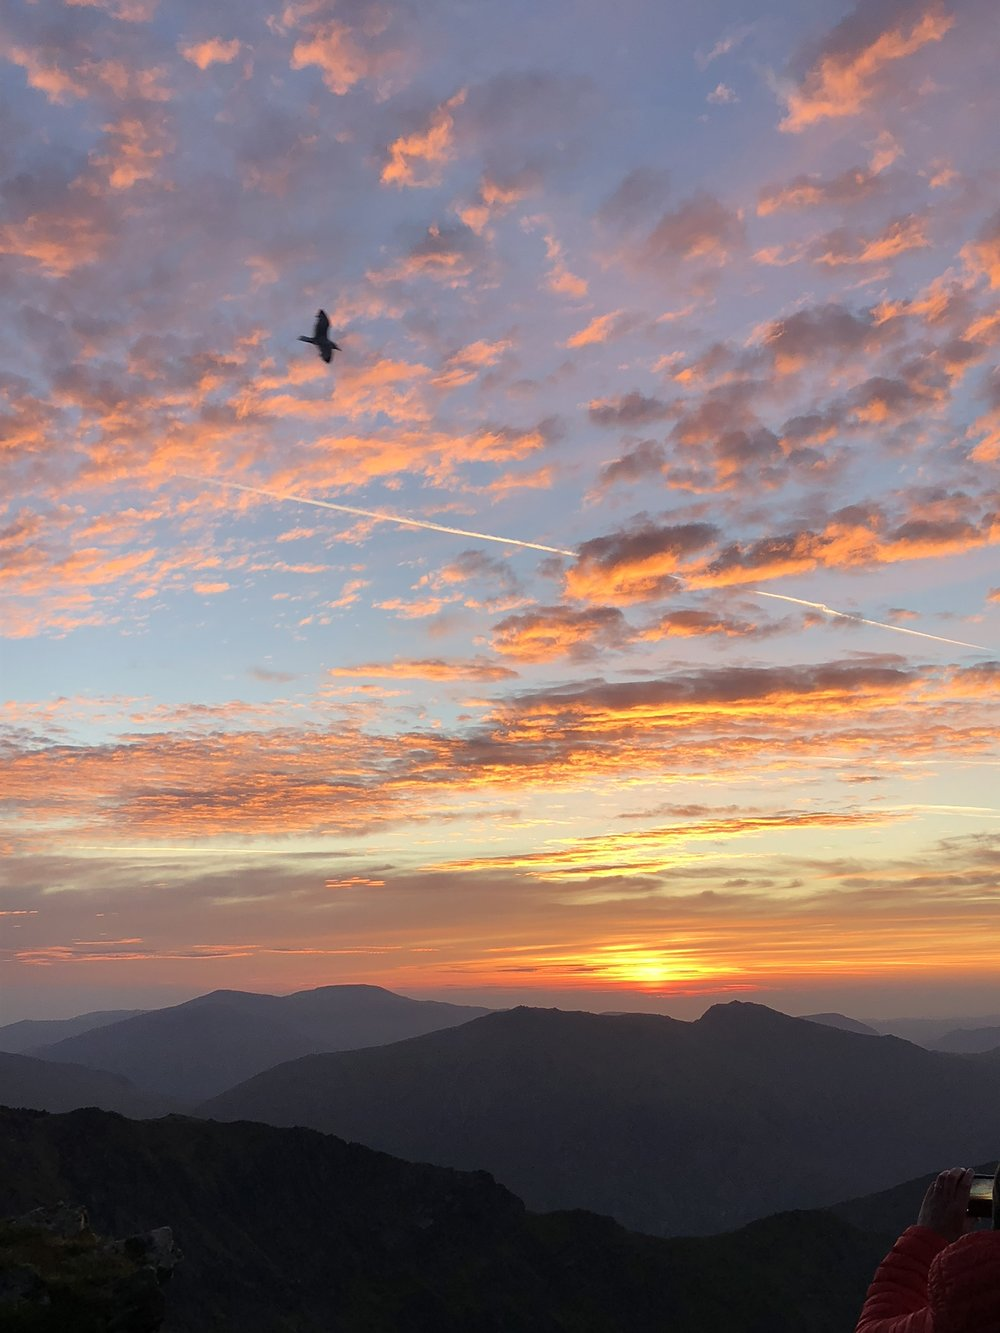 The sun rising from Snowdon's summit. This photo does not even do the view justice. The sky looked like it was on fire. Seeing this view touched me so much, it was awesome.